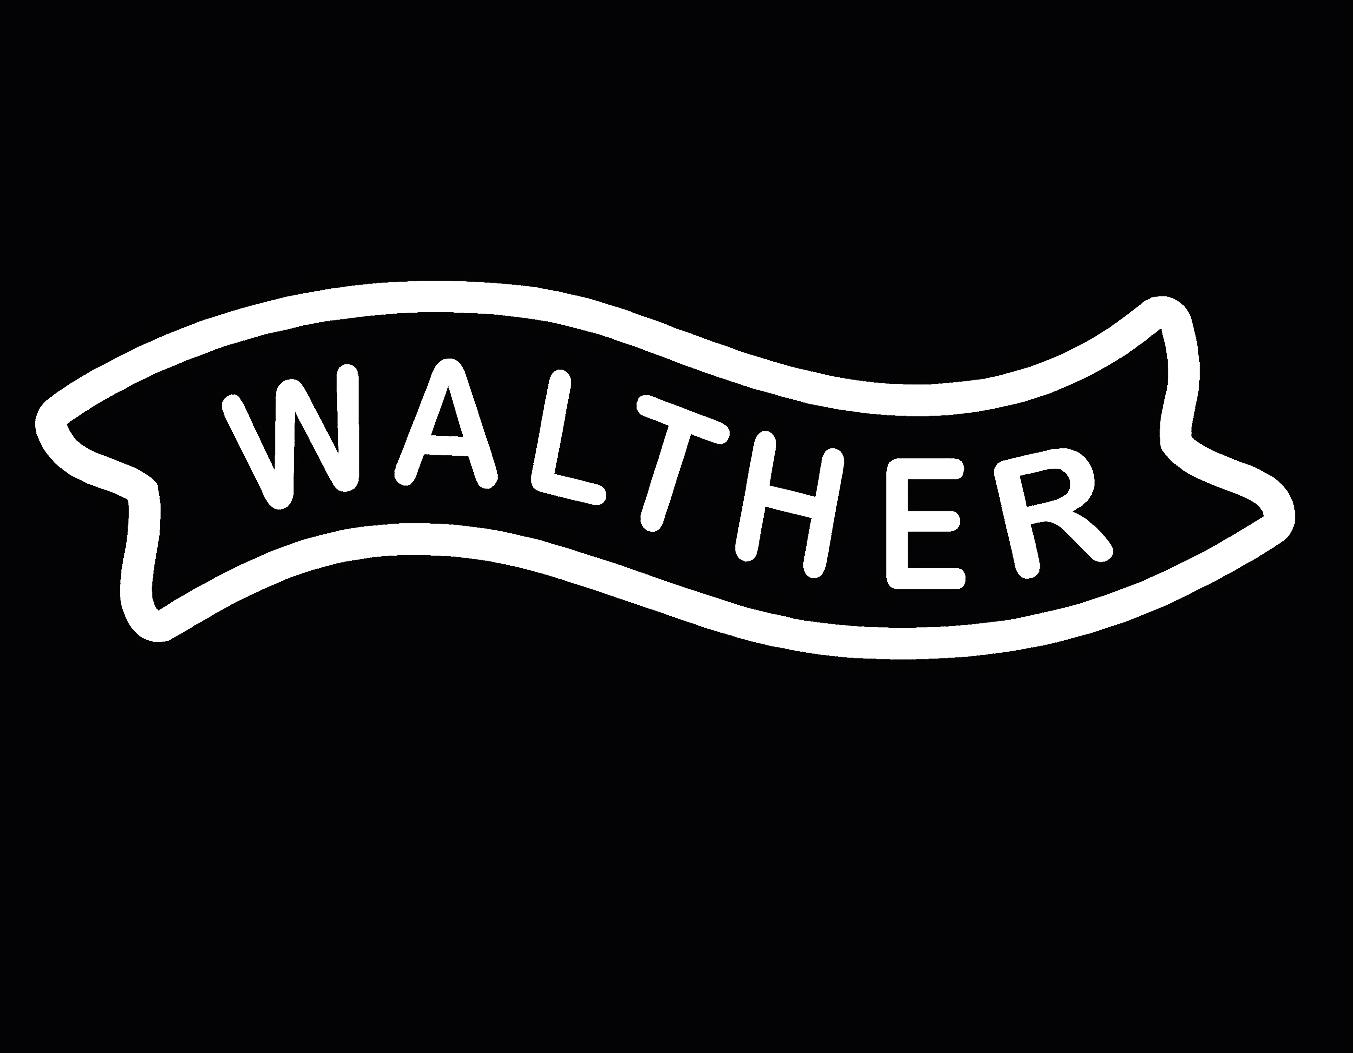 Wholesale Walther Firearms Logo Vinyl Decal Sticker Car Window - Vinyl decals for cars wholesale